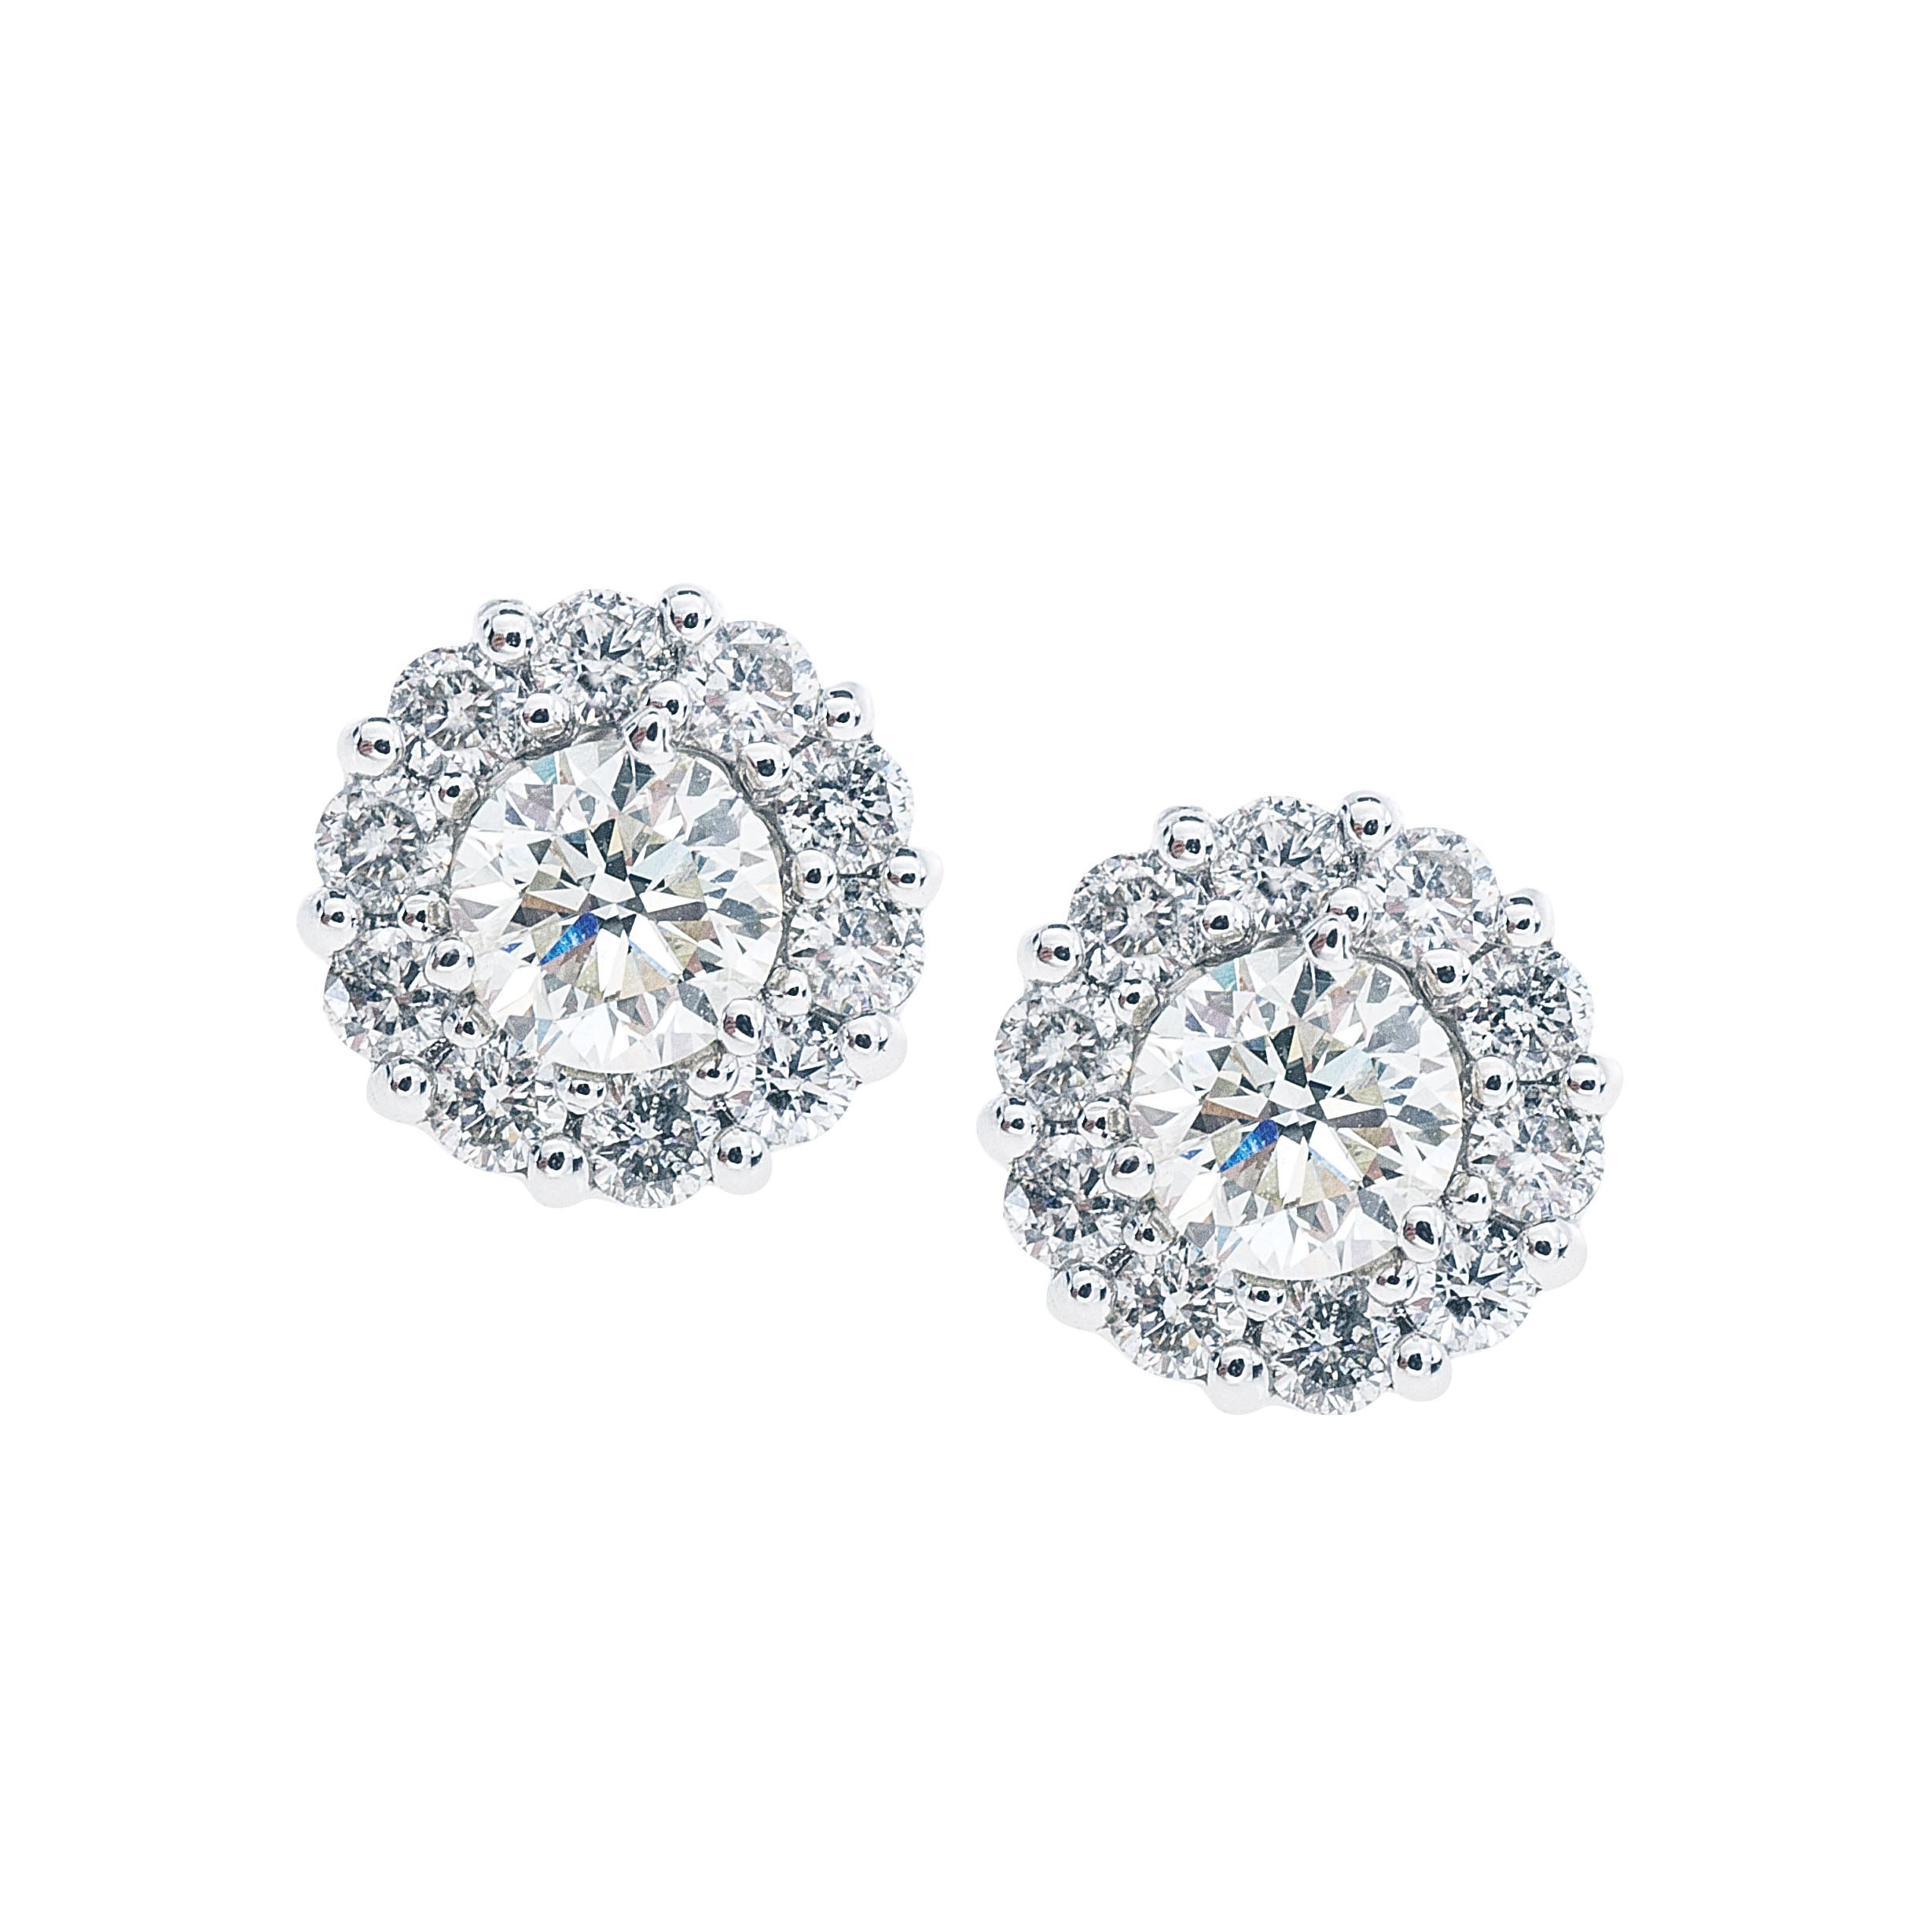 New 0.75 CTW Diamond Stud Earrings